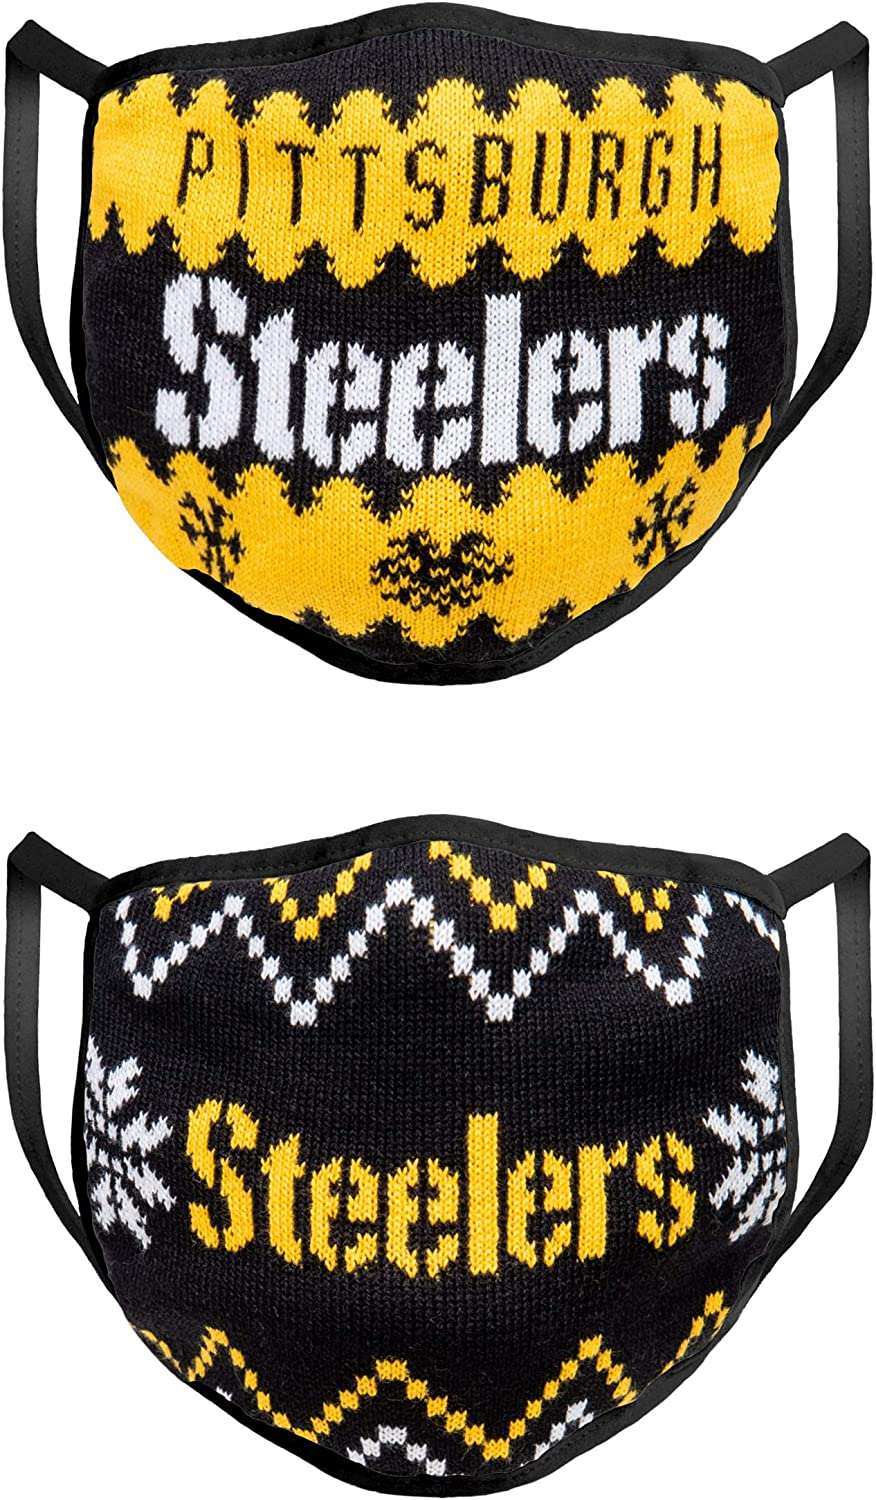 FOCO NFL Mens Knit Face Cover - 2 Pack